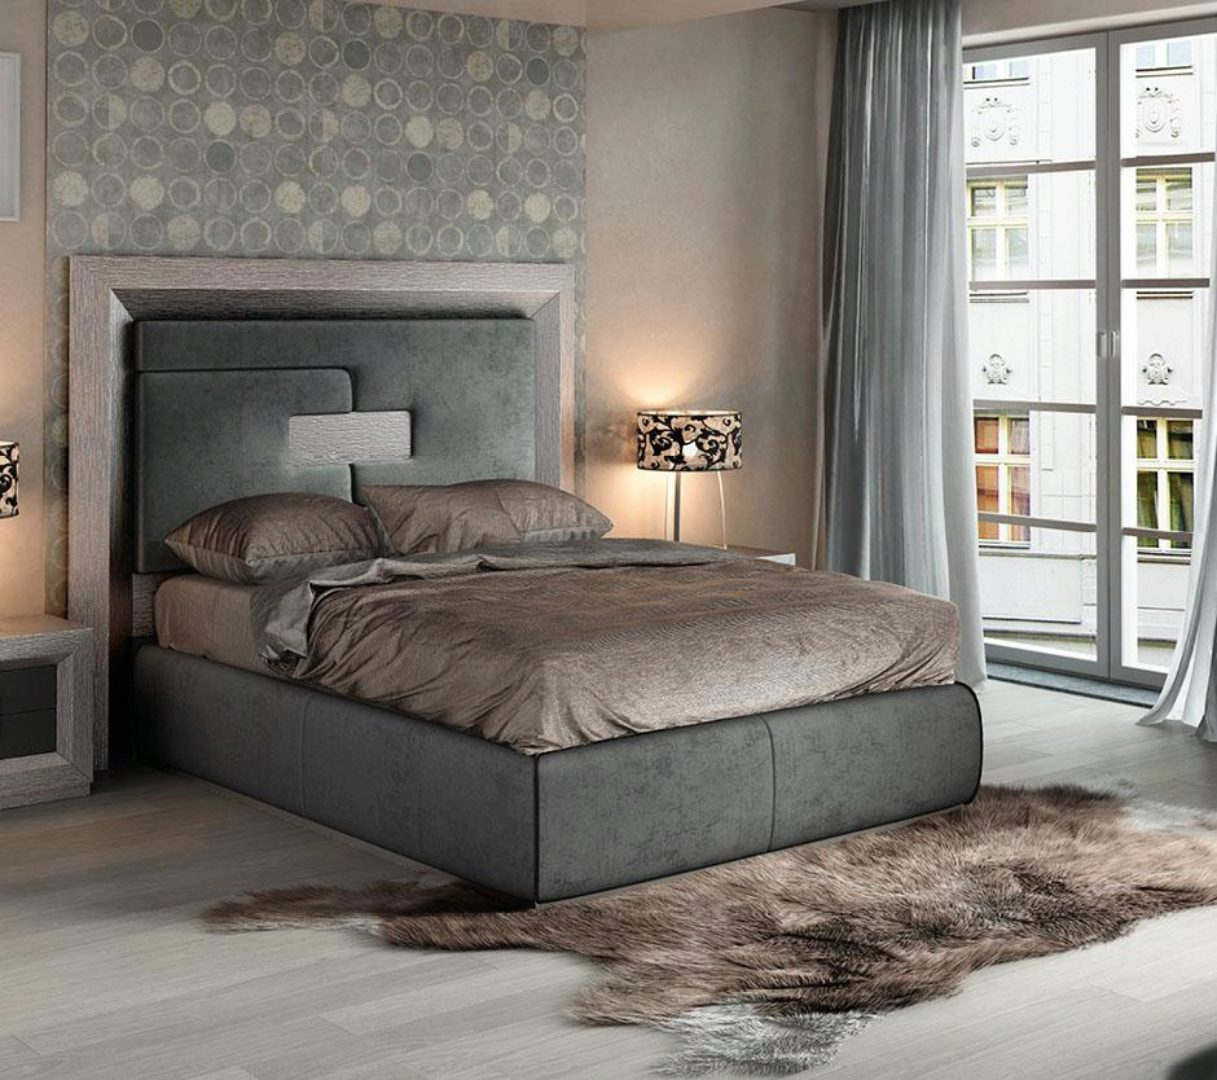 Picture of: Gray High Headboard Queen Bed Modern Contemporary Made In Spain Esf Enzo Esf Enzo Q Bed